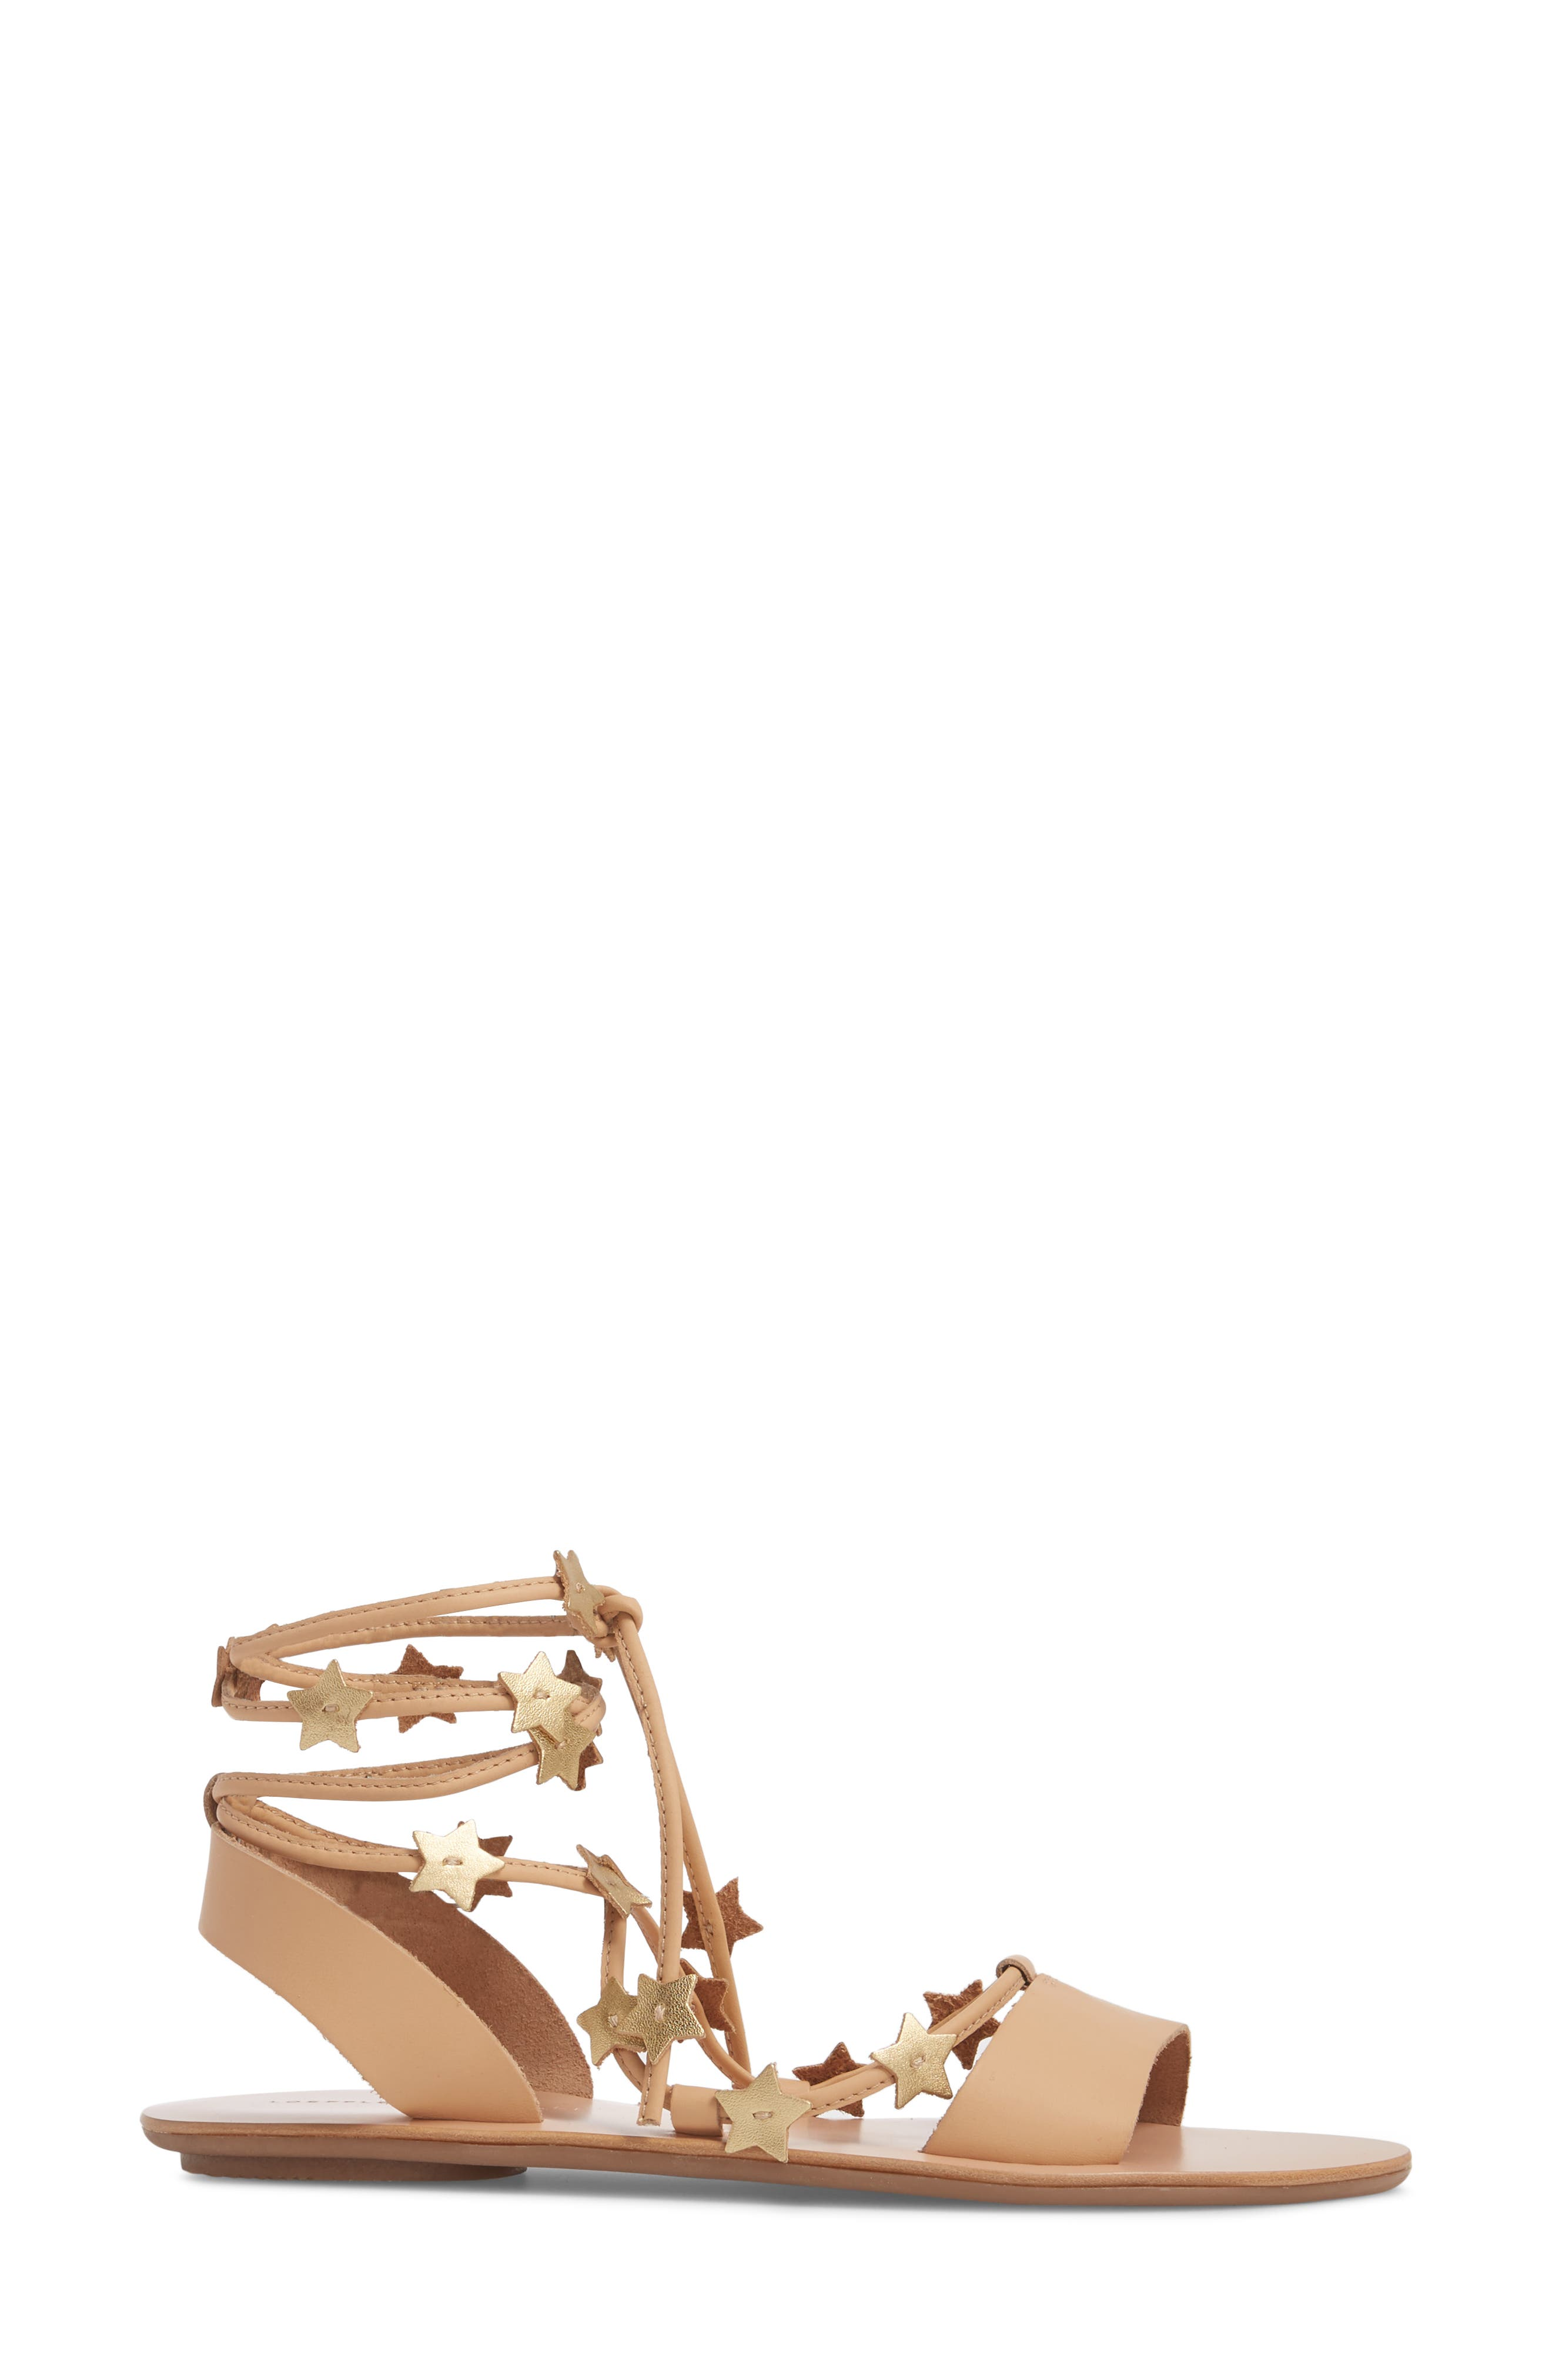 Starla Ankle Wrap Sandal,                             Alternate thumbnail 3, color,                             WHEAT